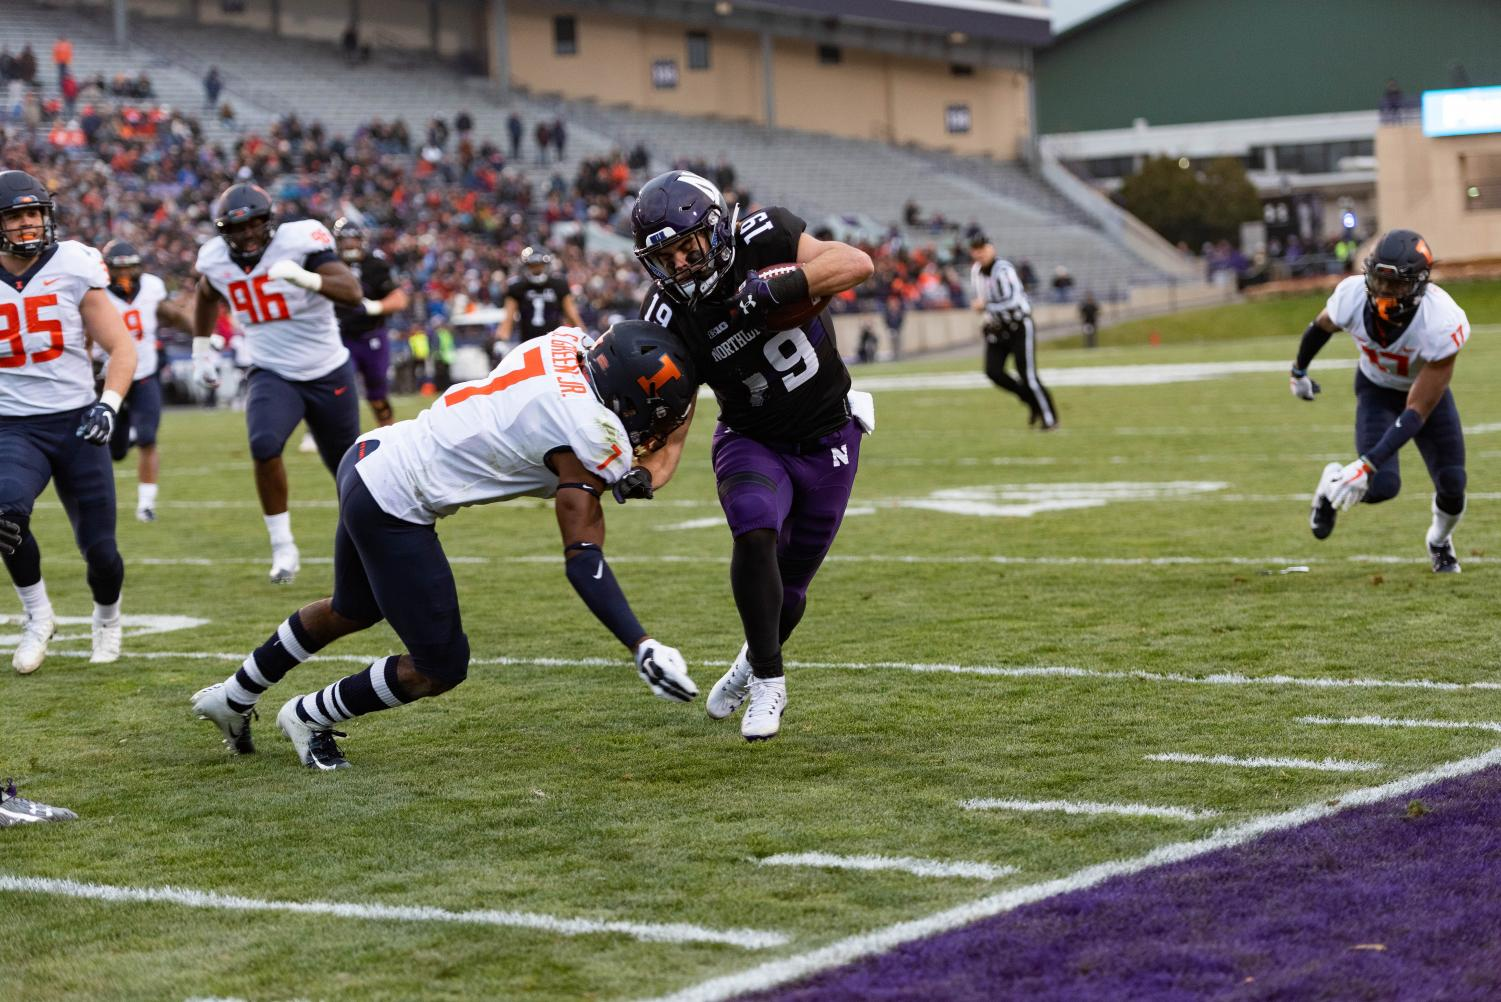 Northwestern receiver Riley Lees tries to evade an Illinois defender during the first half of Saturday's game. NU took a big lead at halftime and held on to win.